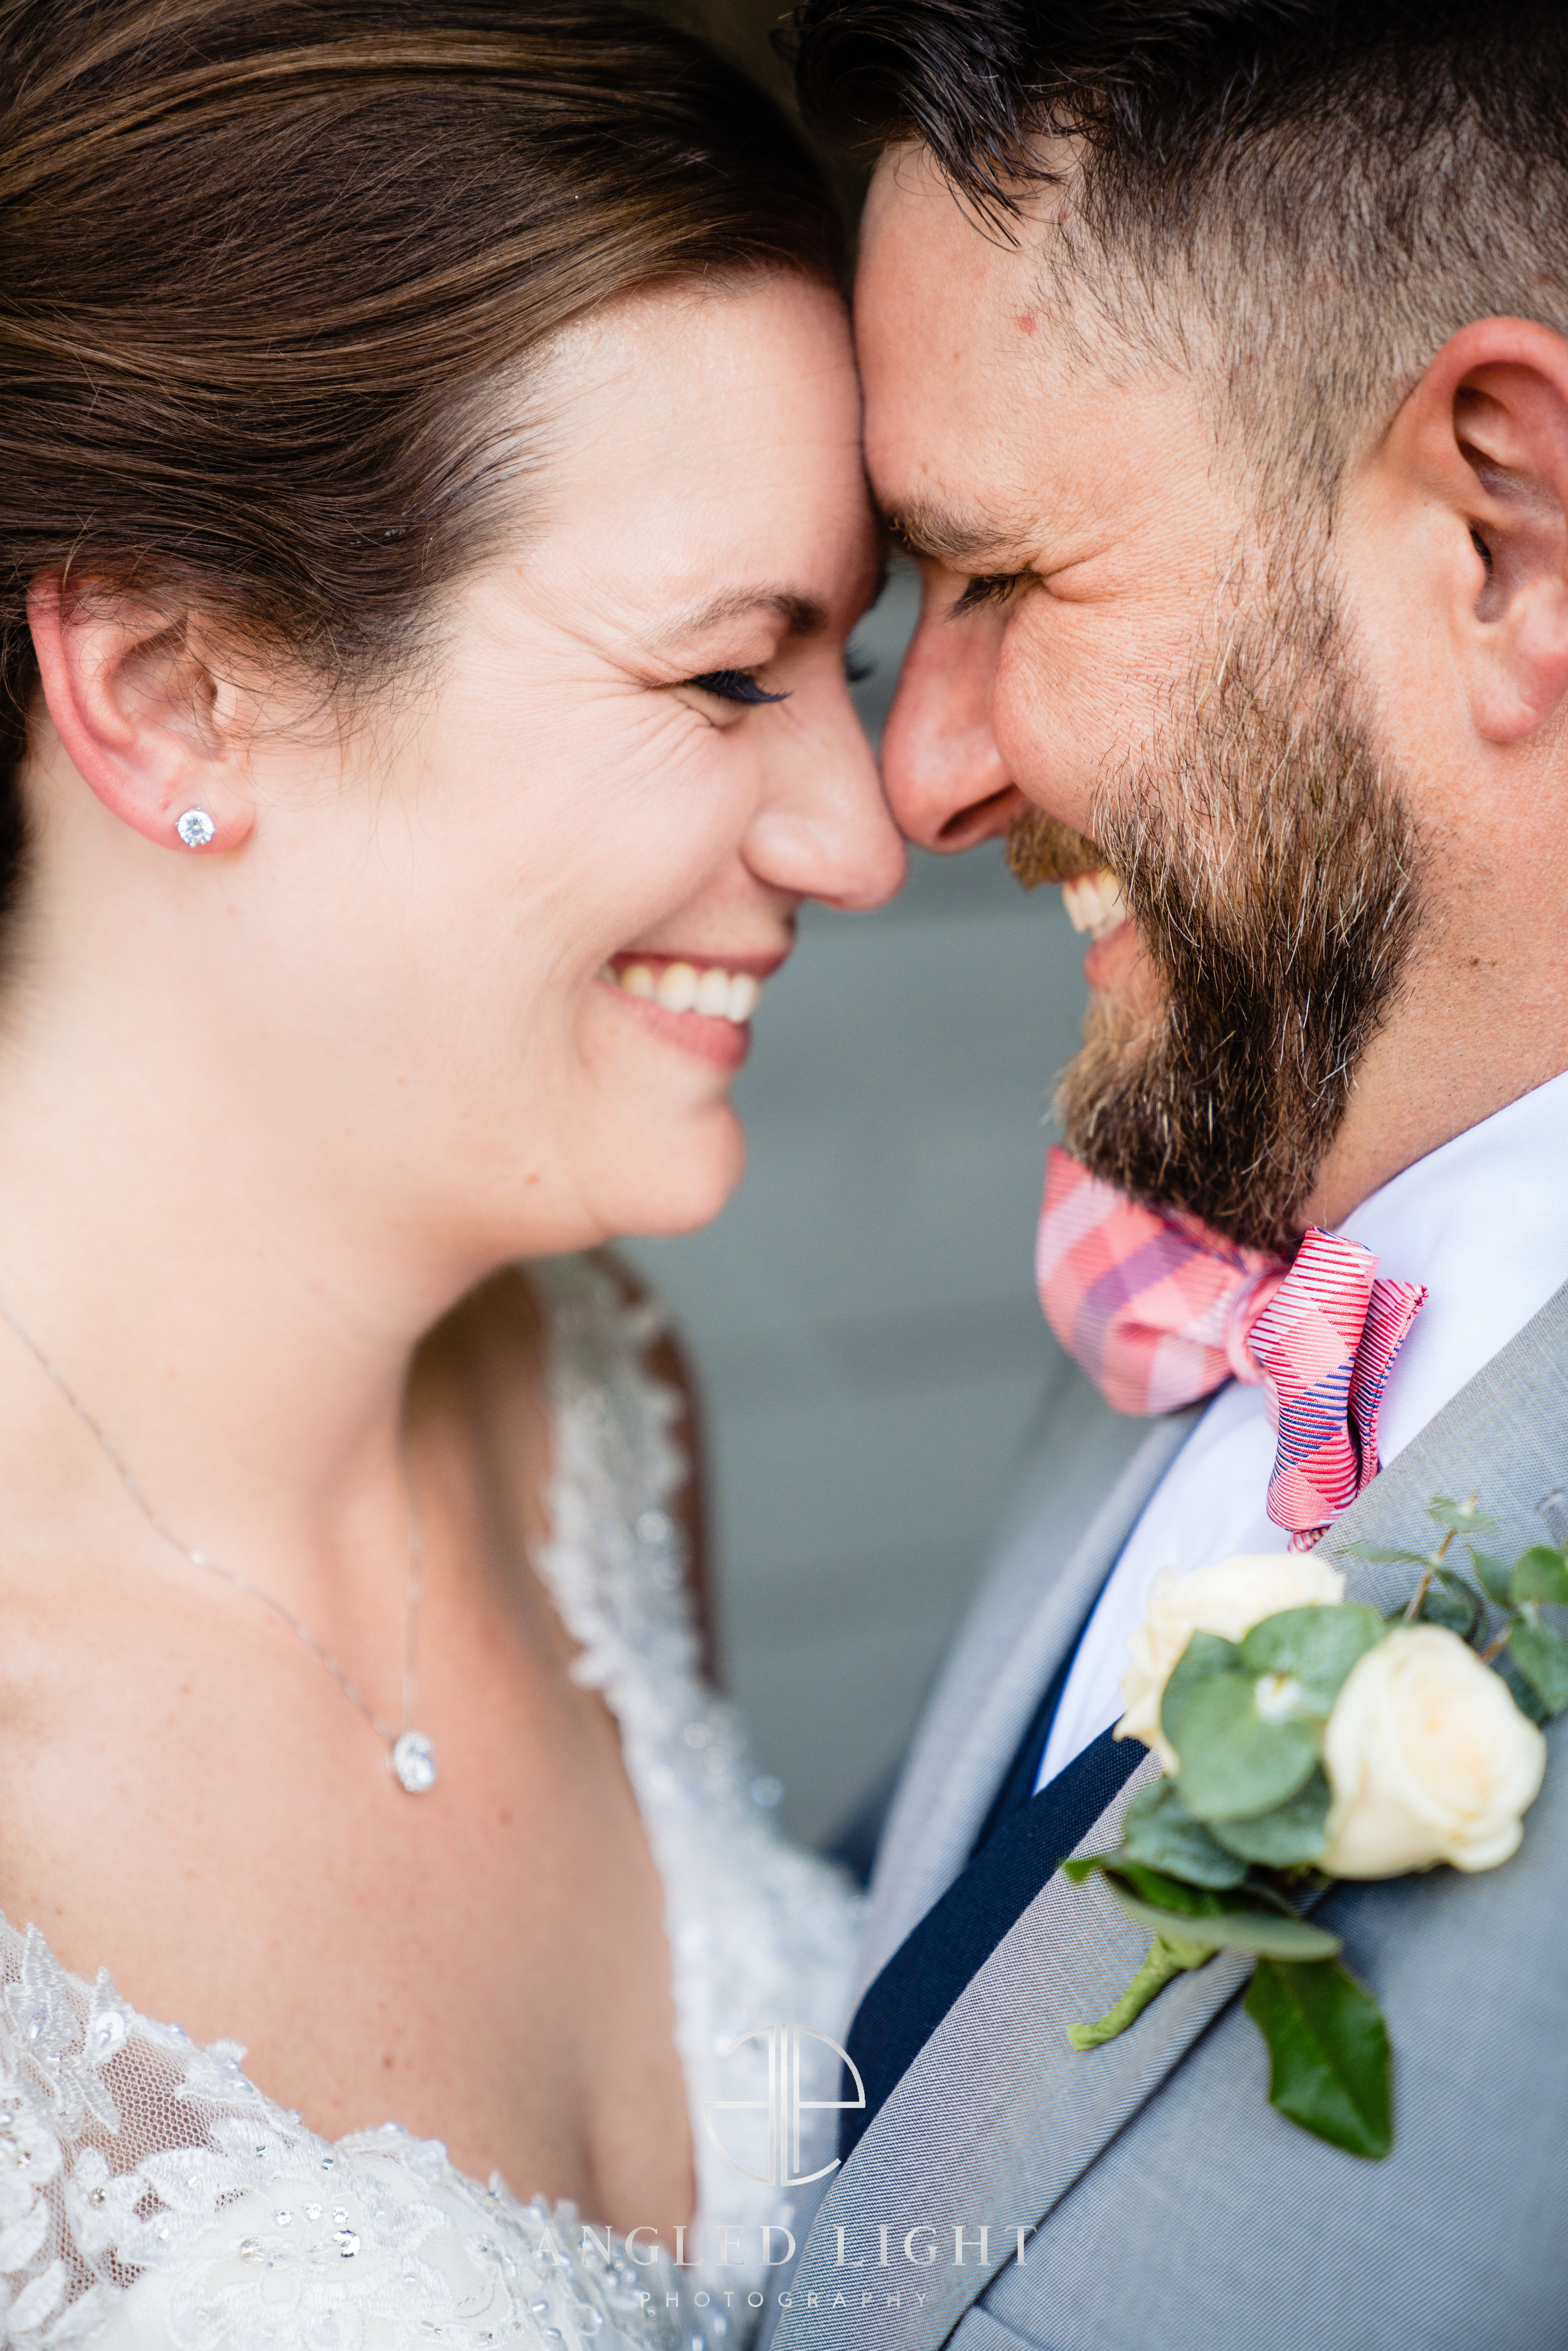 Candace + Rodney | Wedding at The Rutherford in Greenville, SC